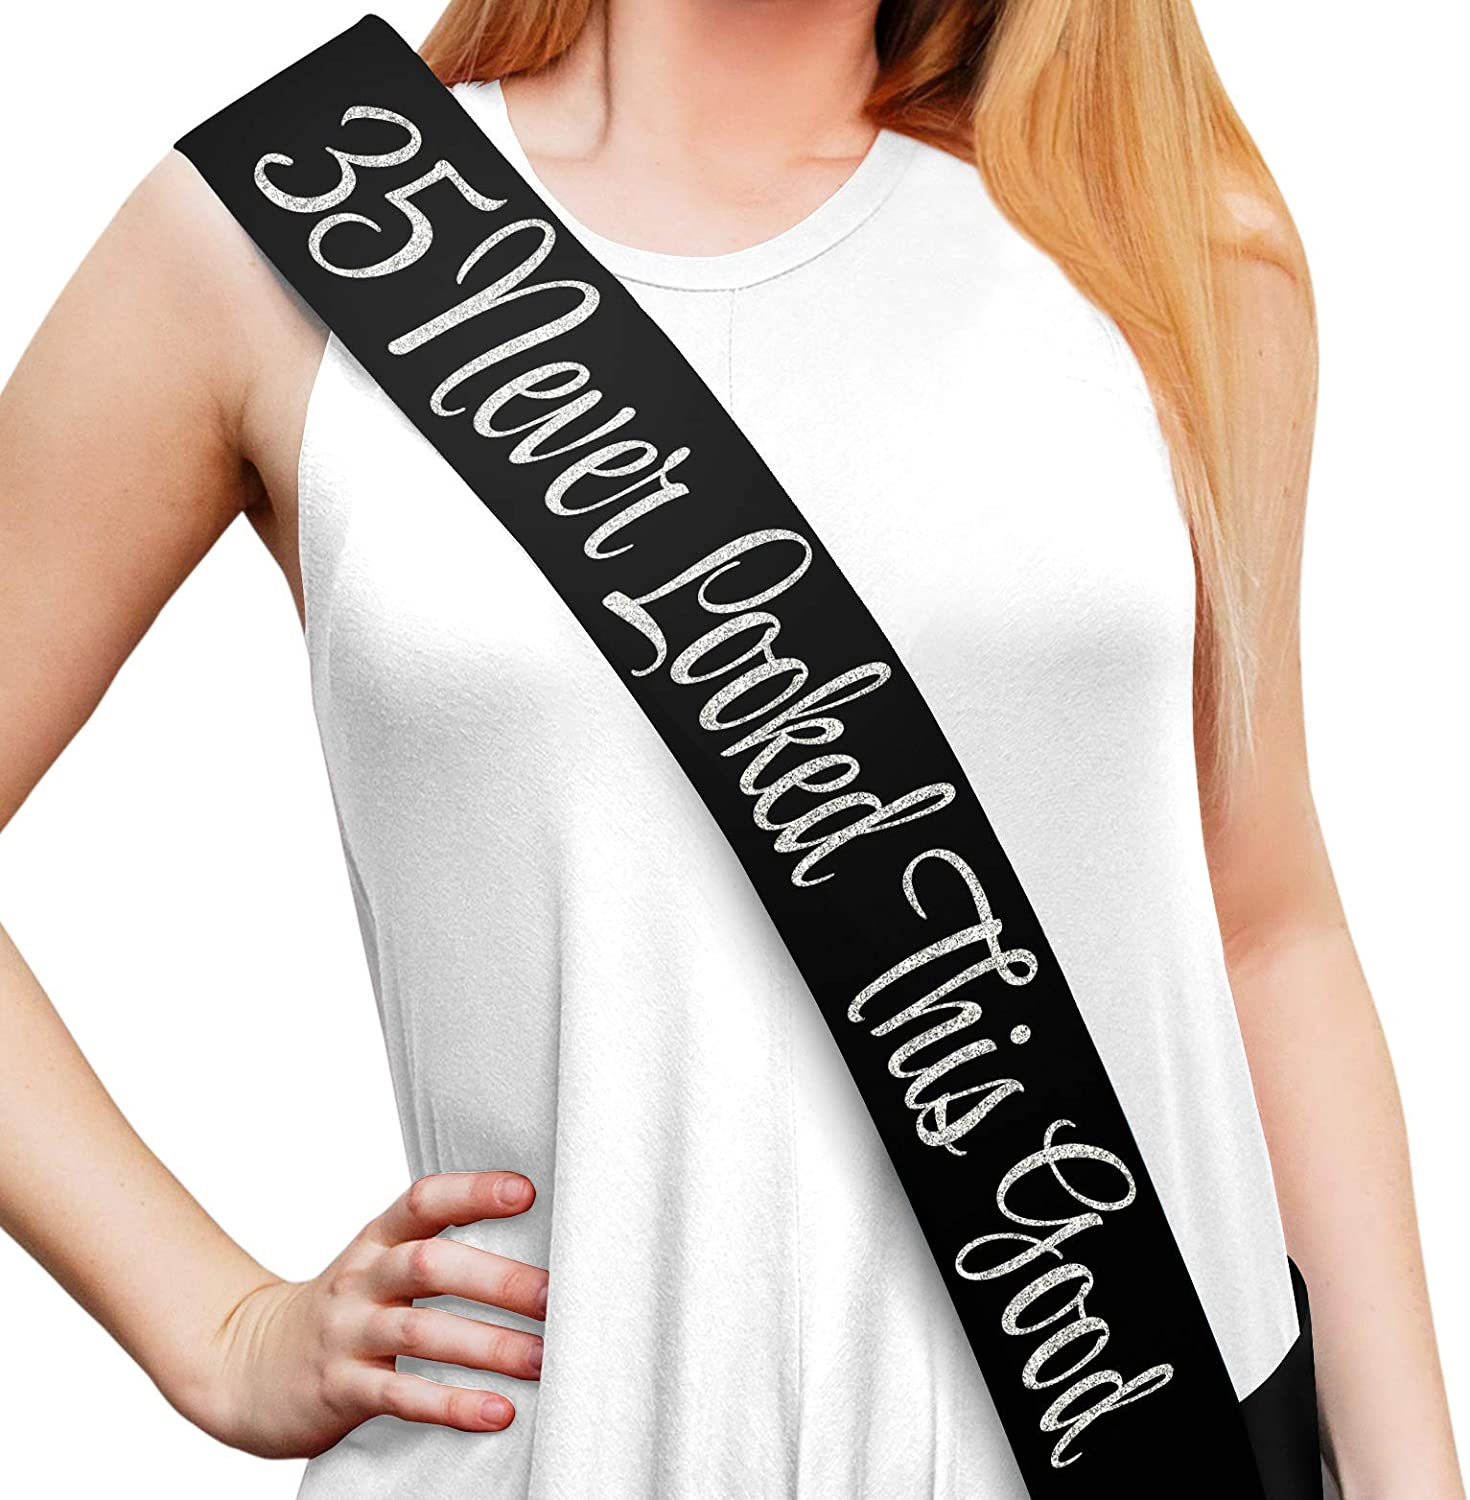 """Happy 35th Birthday Party Supplies Ideas and Decorations Funny Birthday /""""35 Never Looked This Good/"""" Black Glitter Satin Sash"""